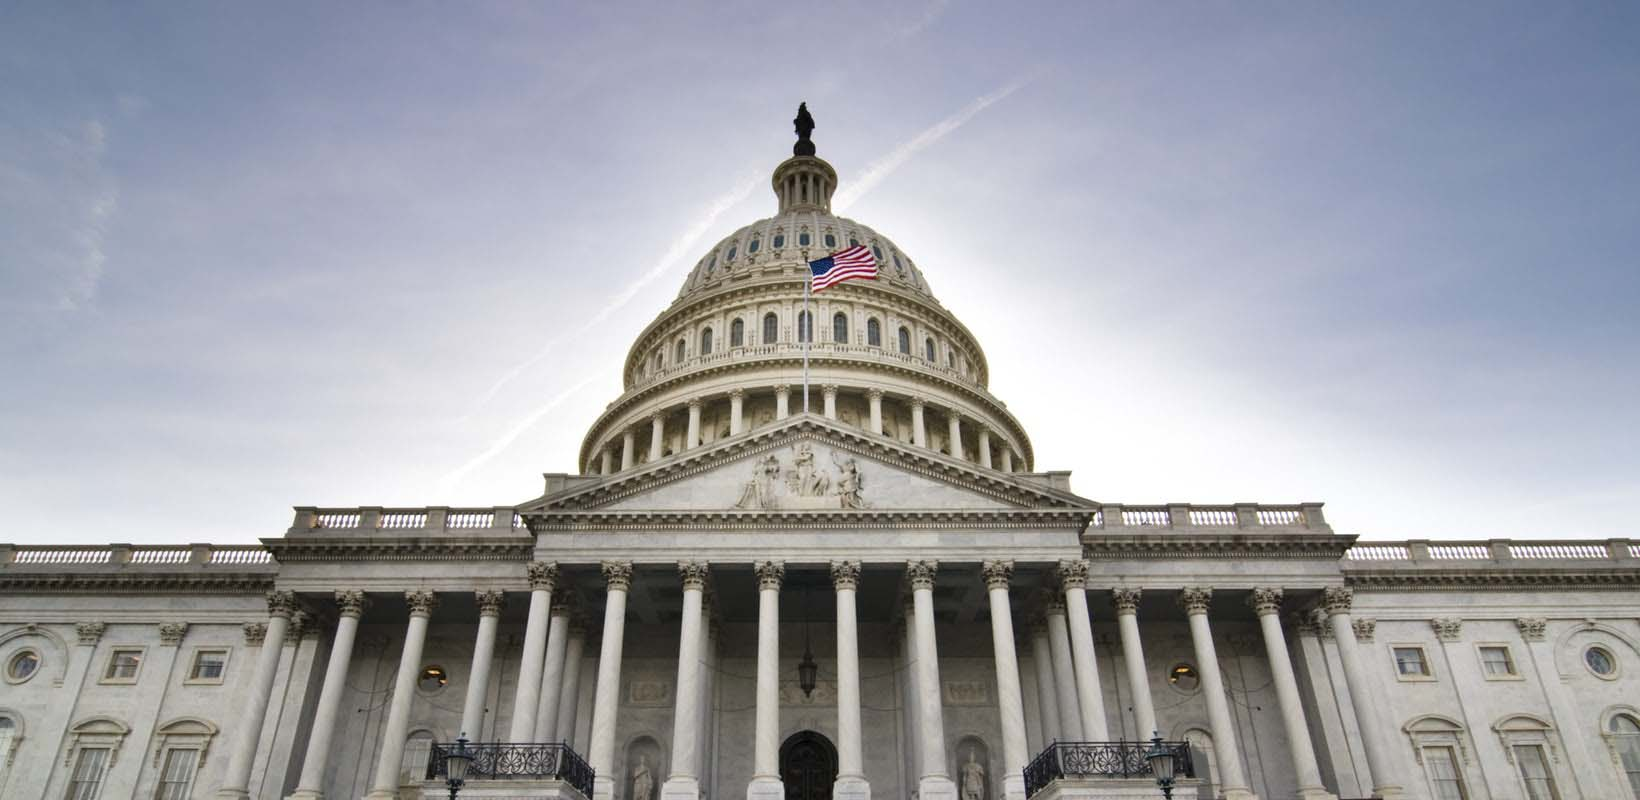 American politics & debate on Capitol Hill tour